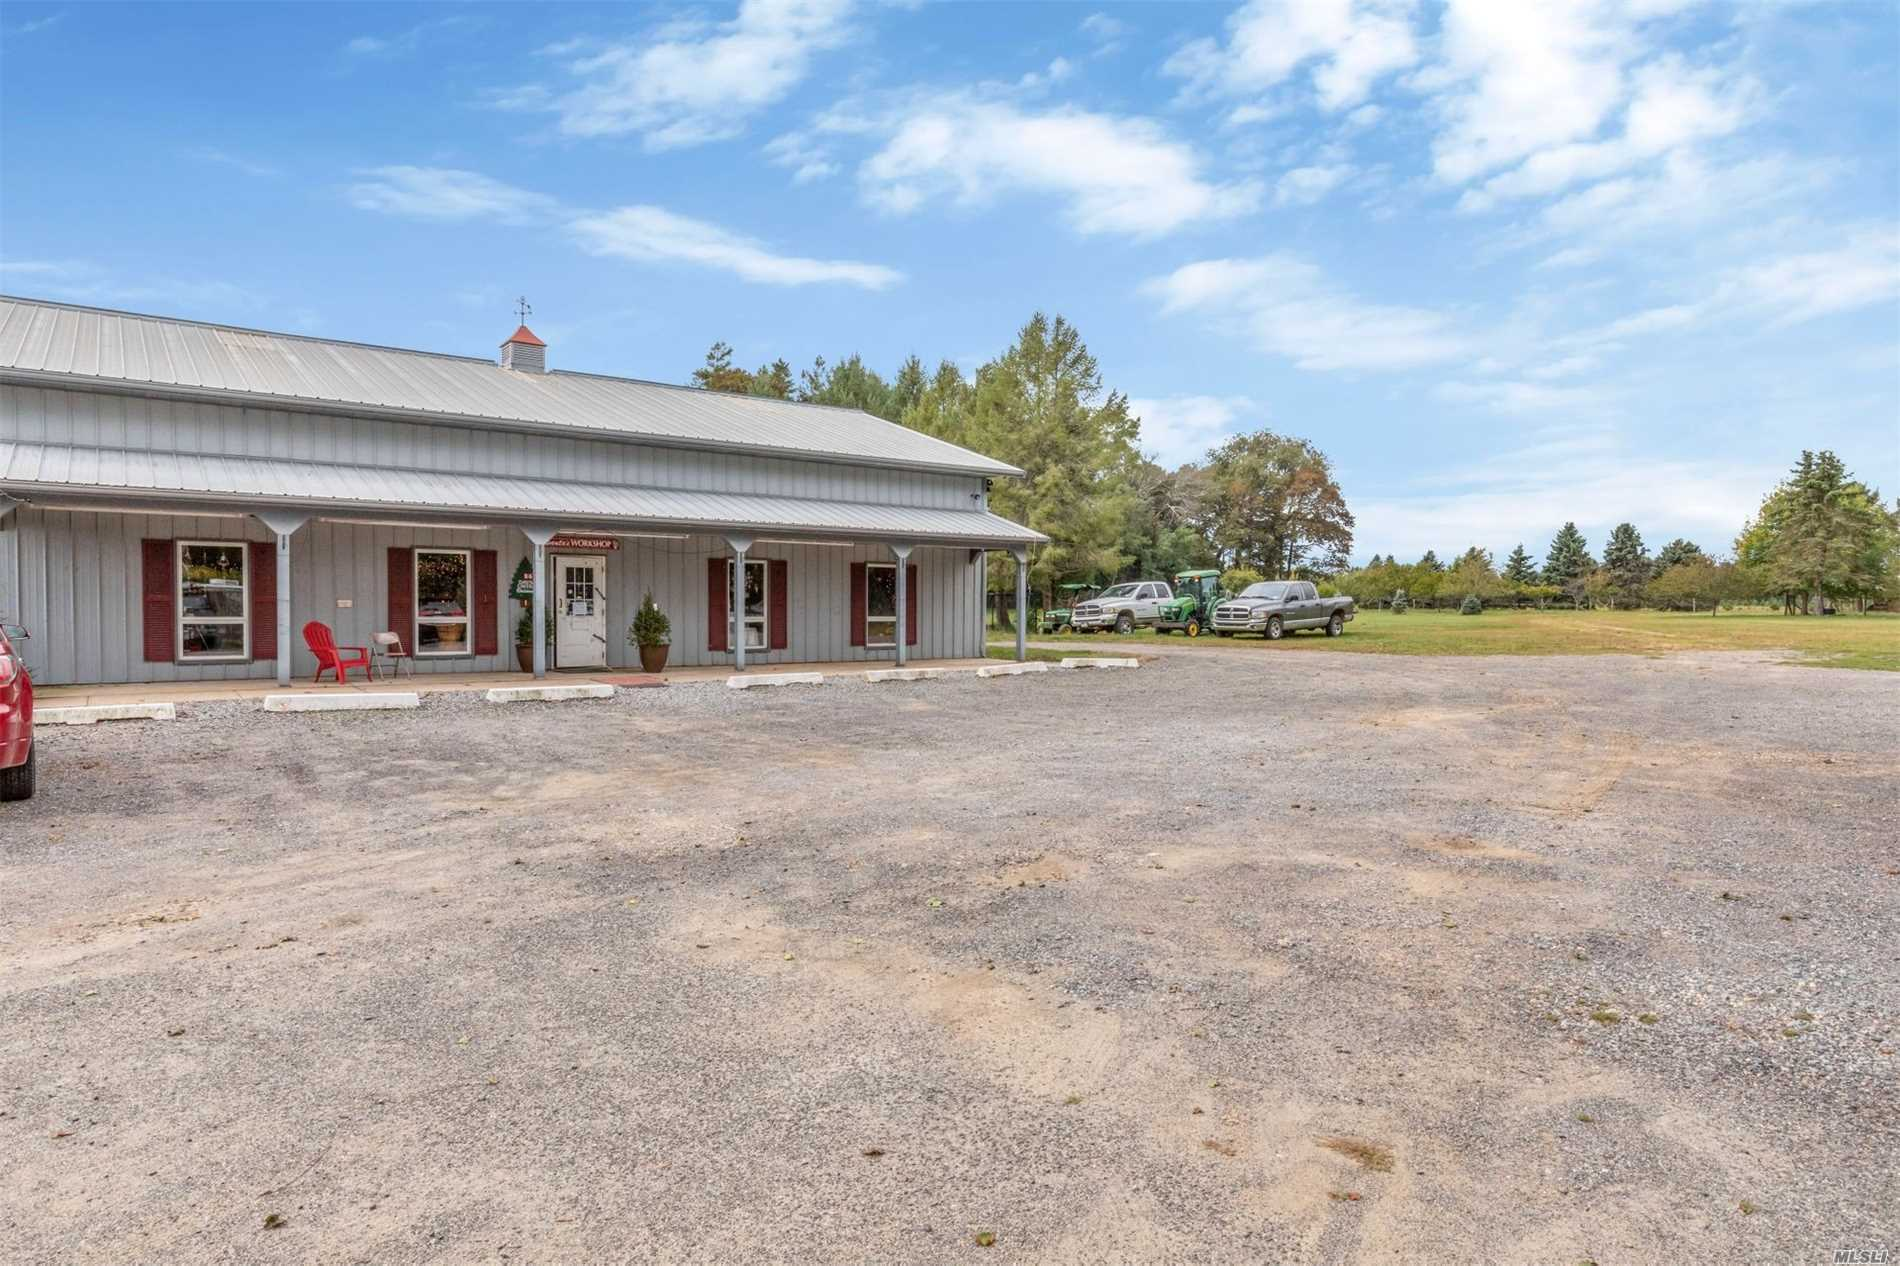 Once In A Lifetime To Purchase A Successful Cutchogue Christmas Tree Farm, Which Consists Of An 1800 Farmhouse 3Br, 1.5Ba Lr, Dr, Eik, Cac. 8000 Sq.Ft. Morton Building, 4 Irrigation Wells, 5.2 Full Rights Acres, 22.7 Ag. Acres For A Total Of 27.9 Ac. Presently Planted With 15-20, 000 Xmas Trees Approx.4, 000 Ready For Xmas 18'